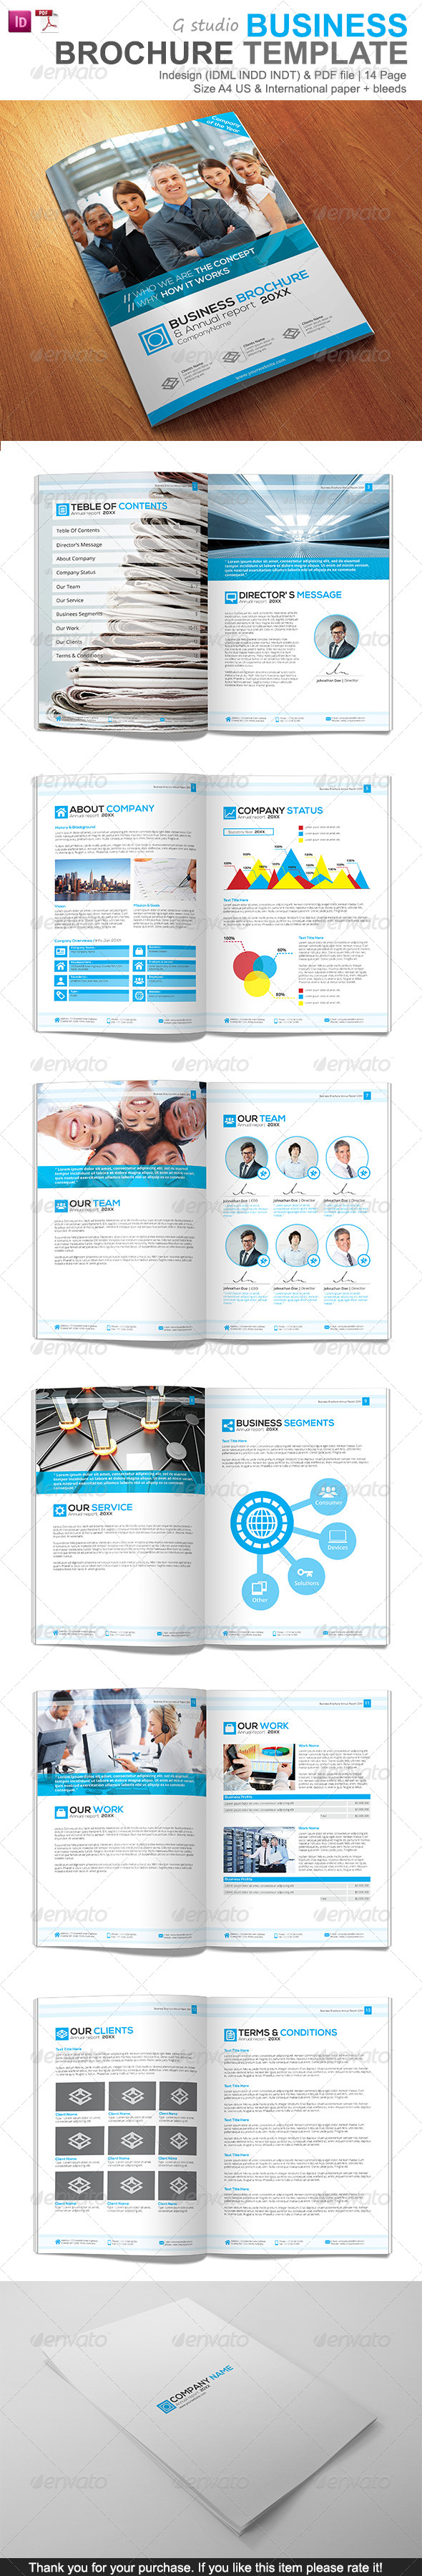 Gstudio Business Brochure Template